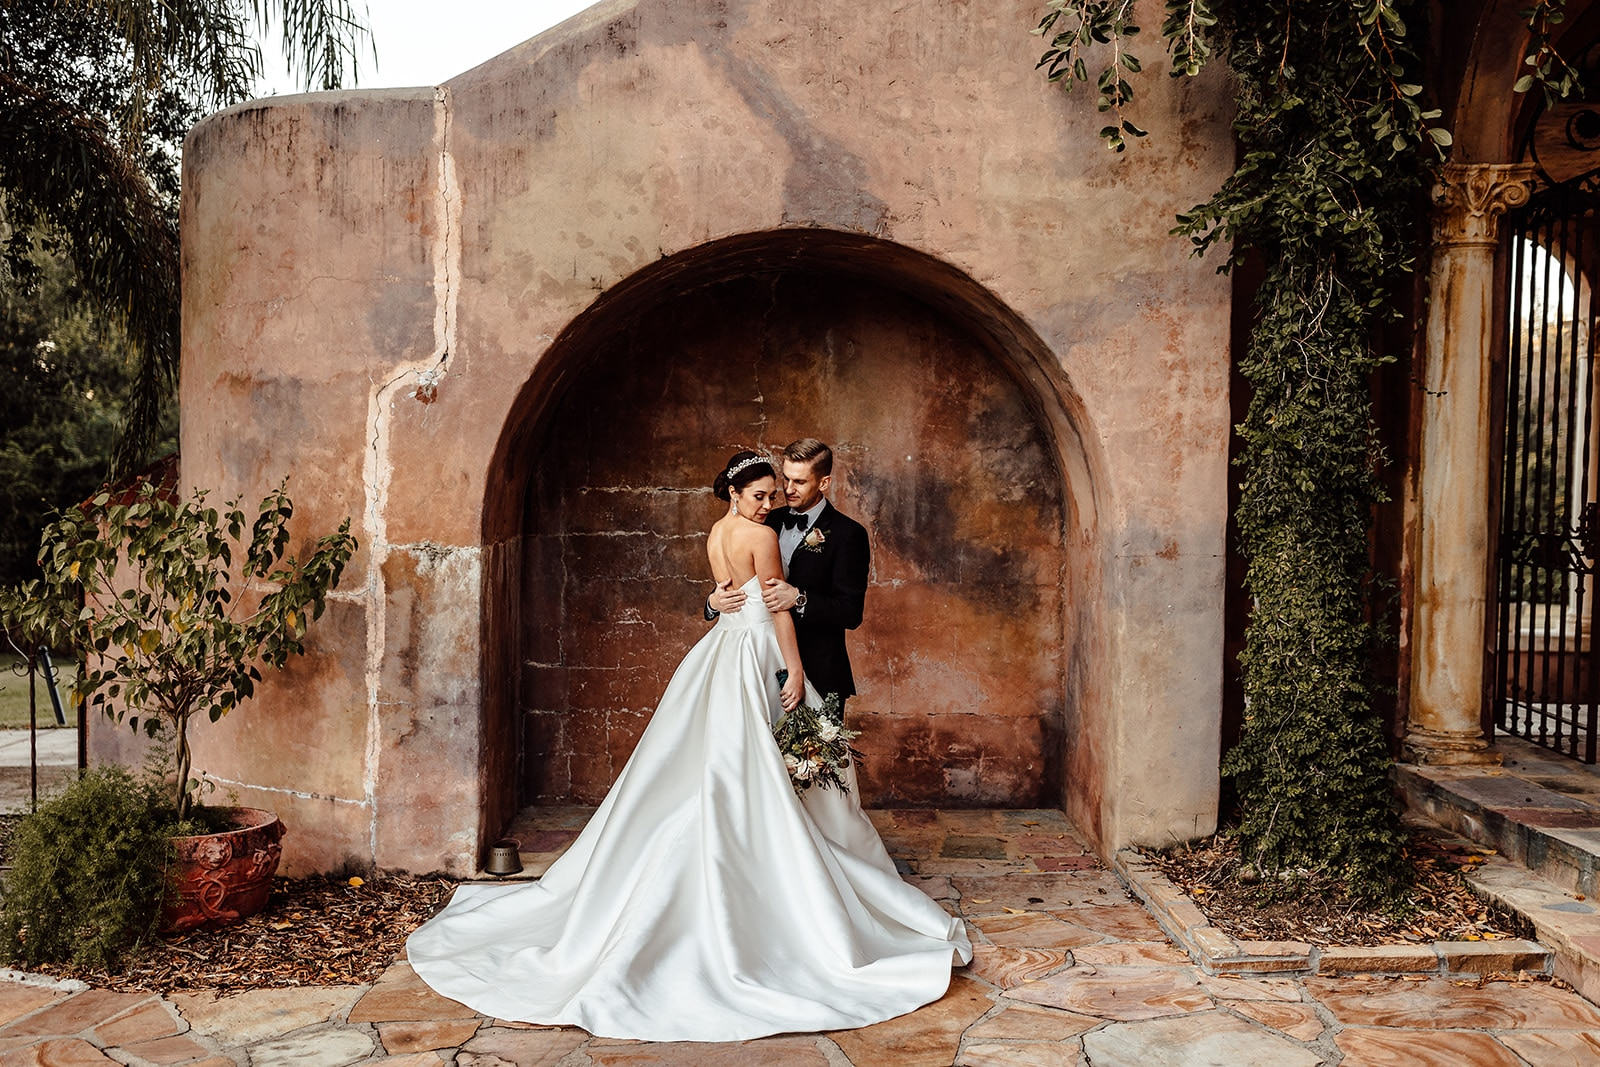 couple stand together in front of unique alcove outside close to each other with brides elegant ballgown